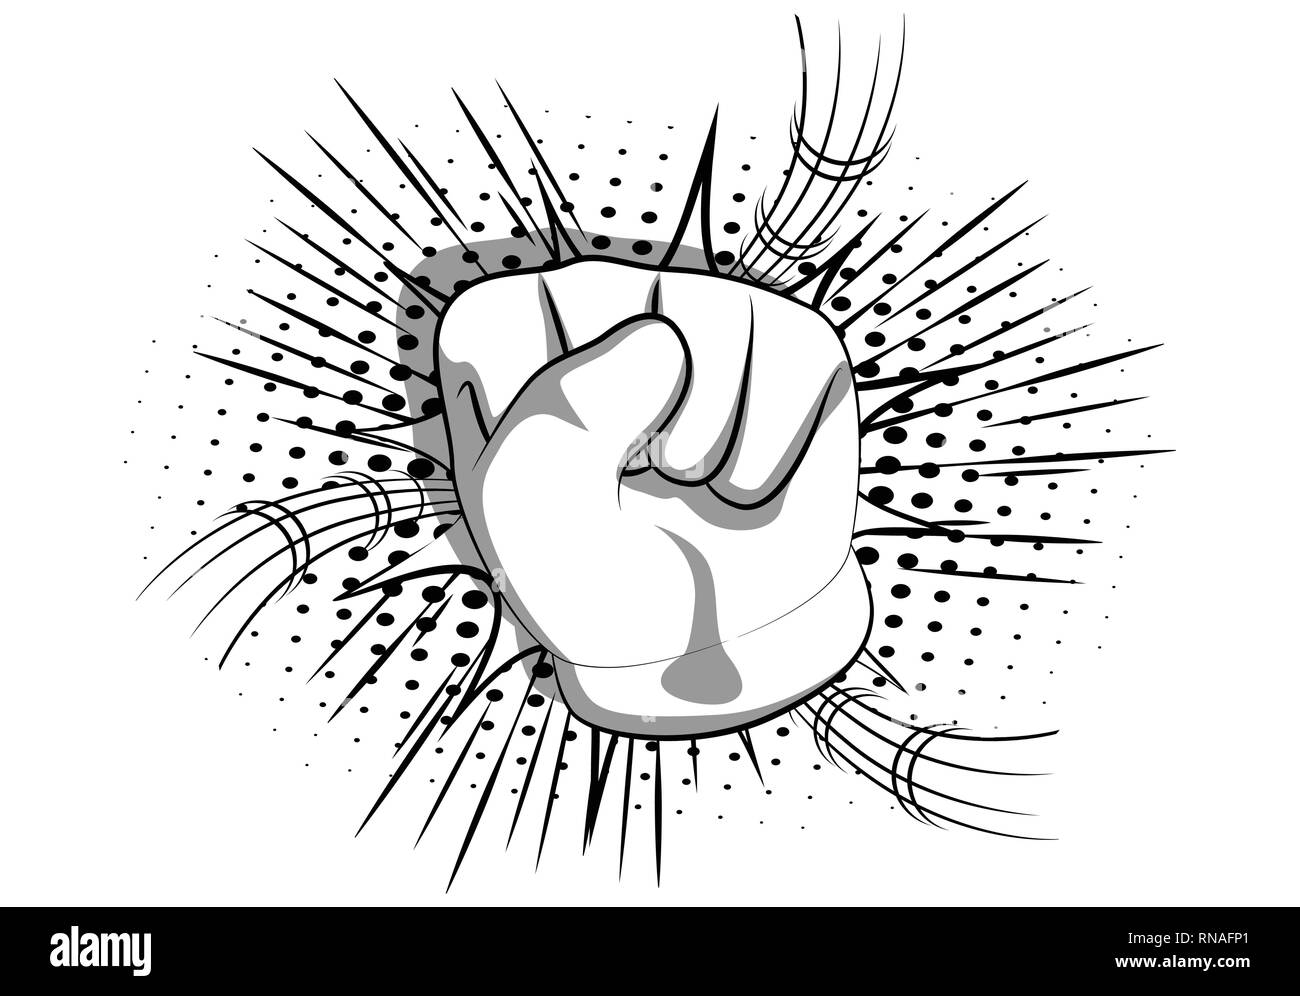 Vector cartoon hand making power to the people fist gesture. Illustrated hand sign on comic book background. - Stock Image